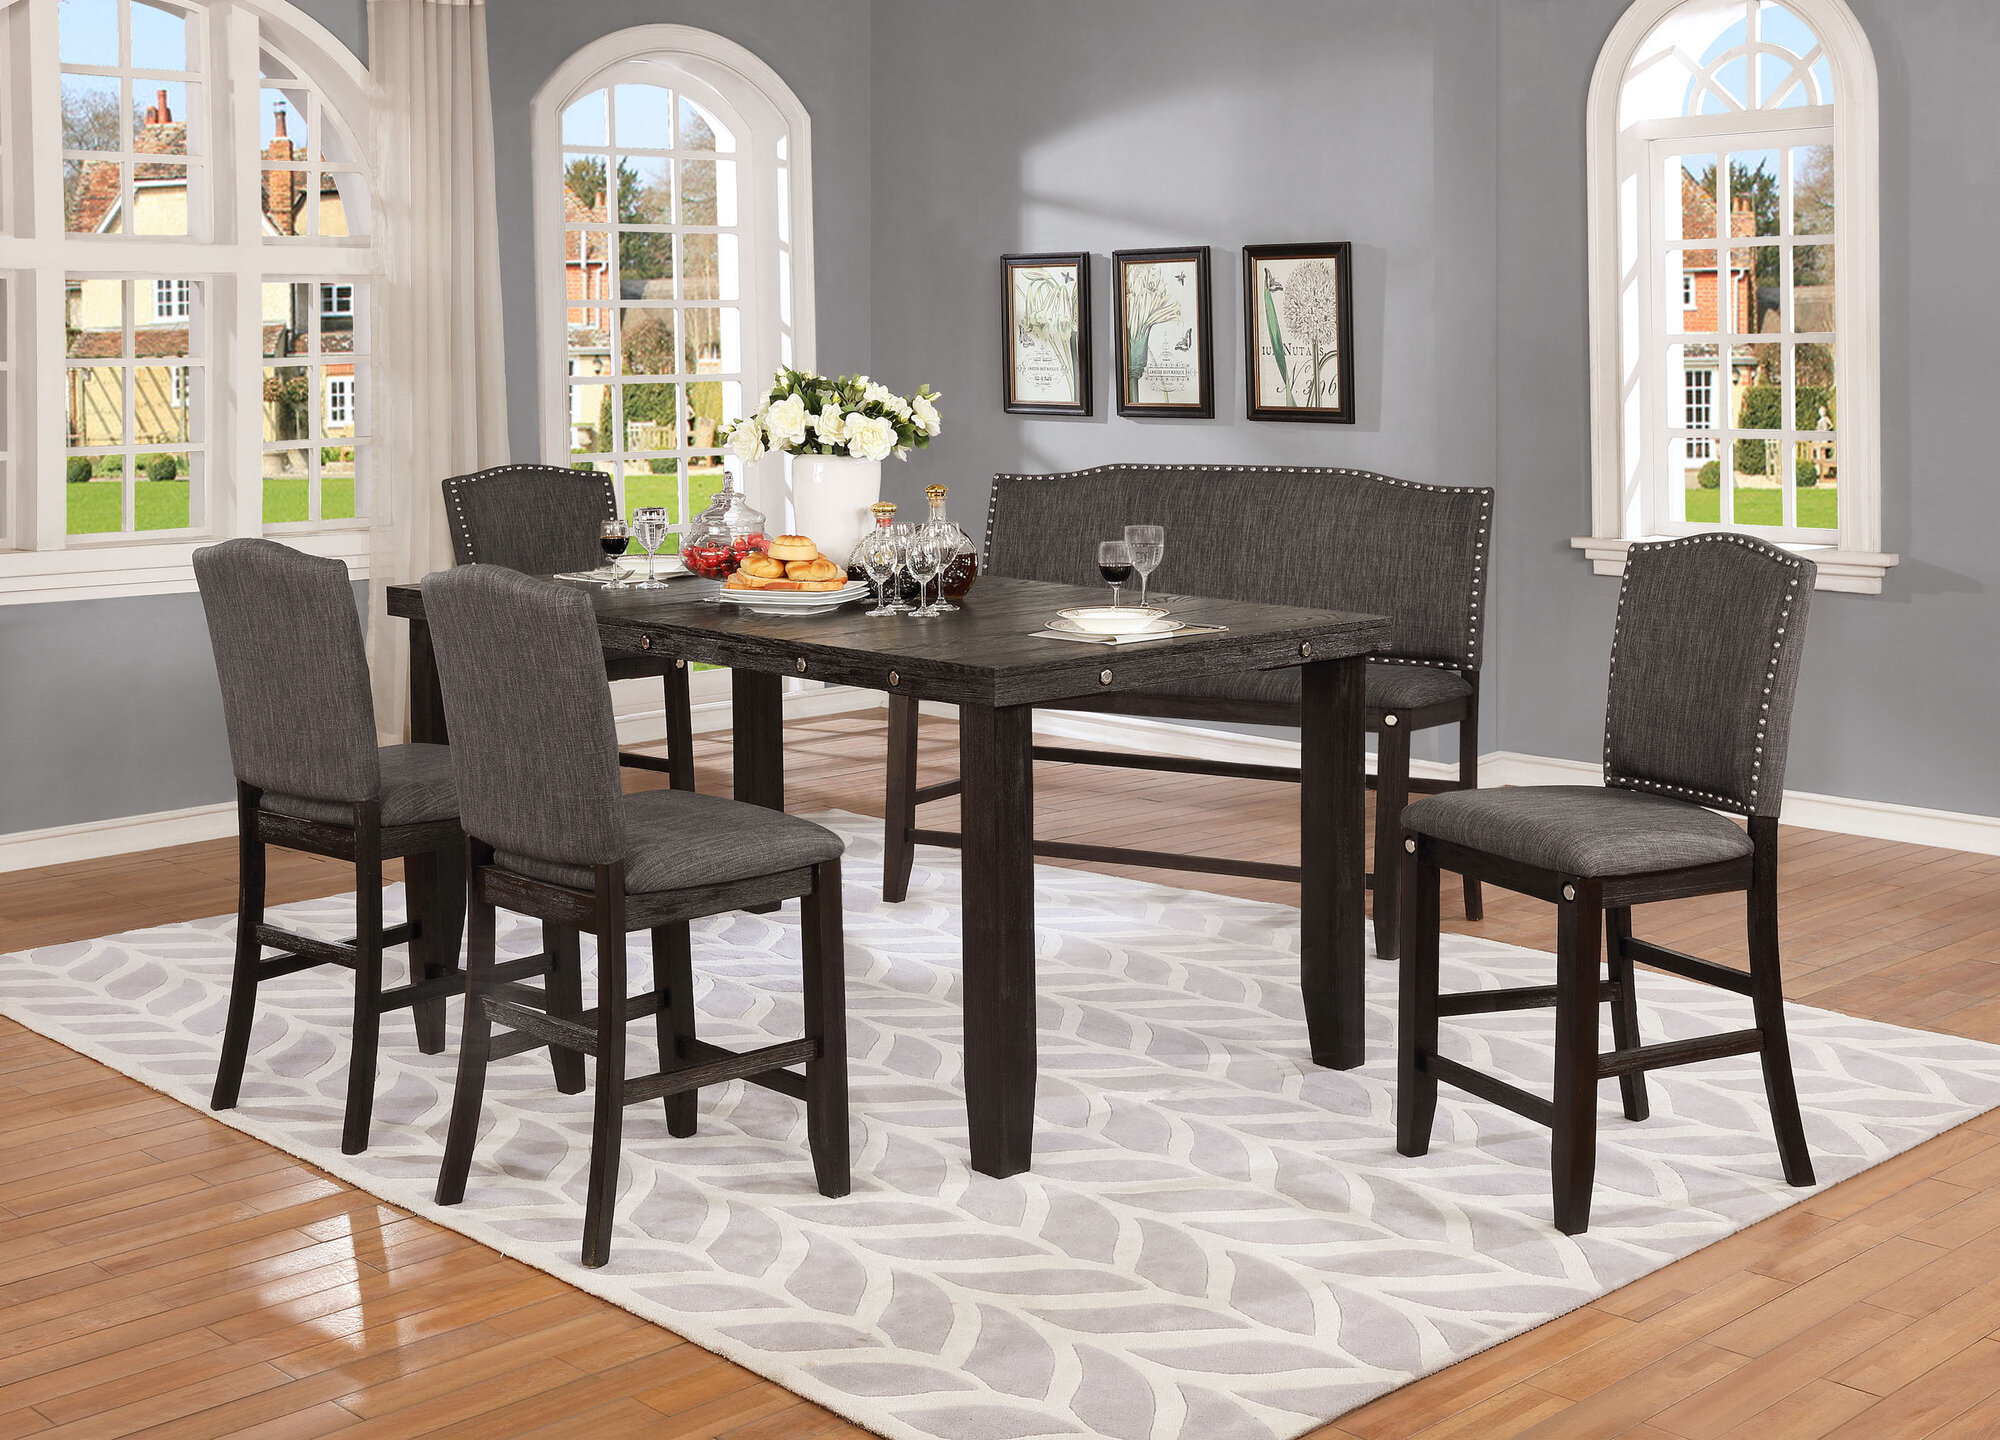 Awe Inspiring Details About Darby Home Co Dykstra 6 Piece Counter Height Solid Wood Dining Set Alphanode Cool Chair Designs And Ideas Alphanodeonline